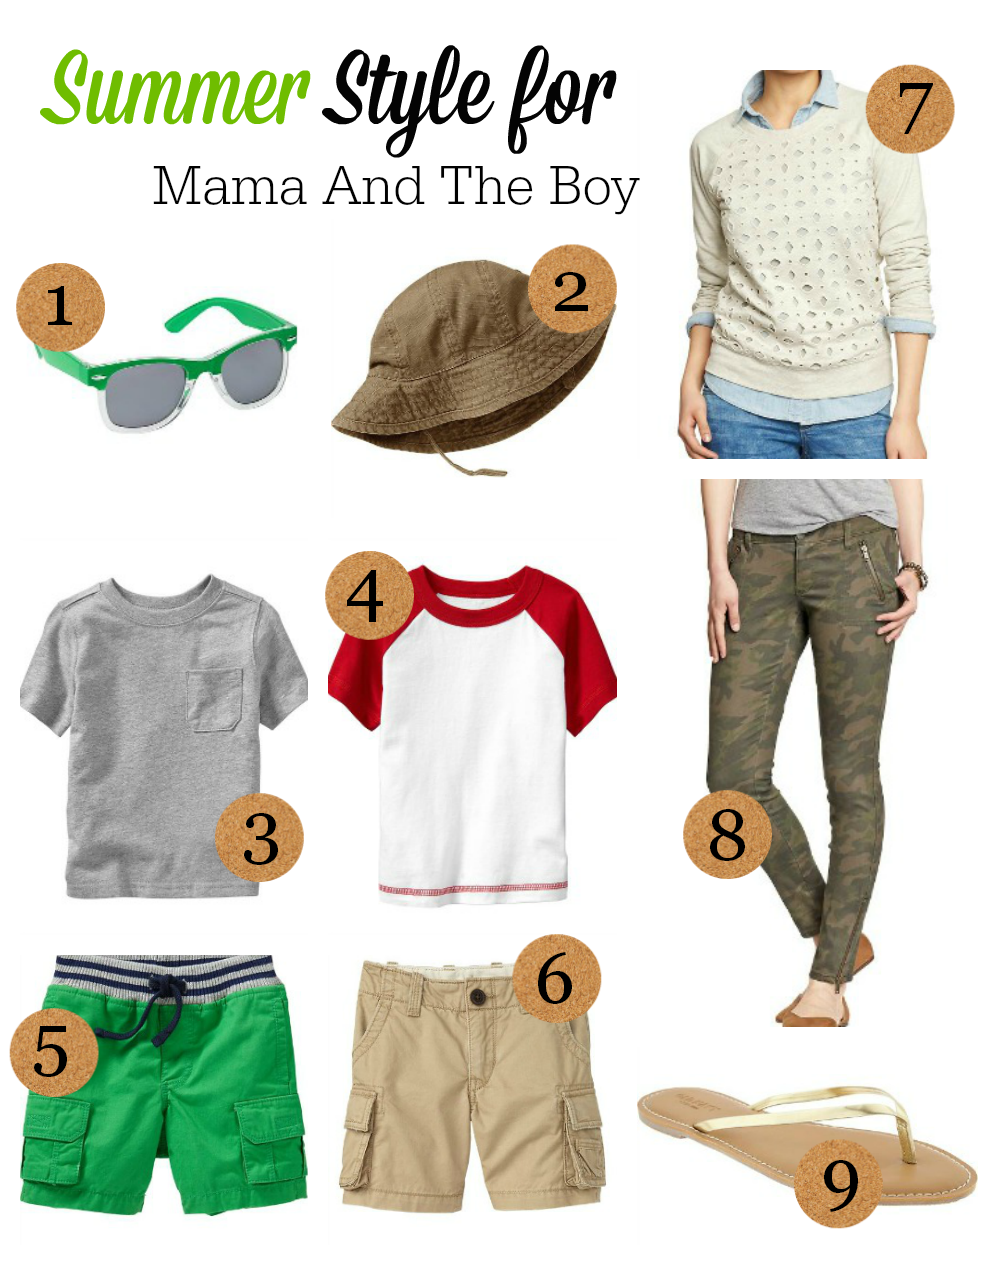 Summer Style Inspiration for Boys & Moms